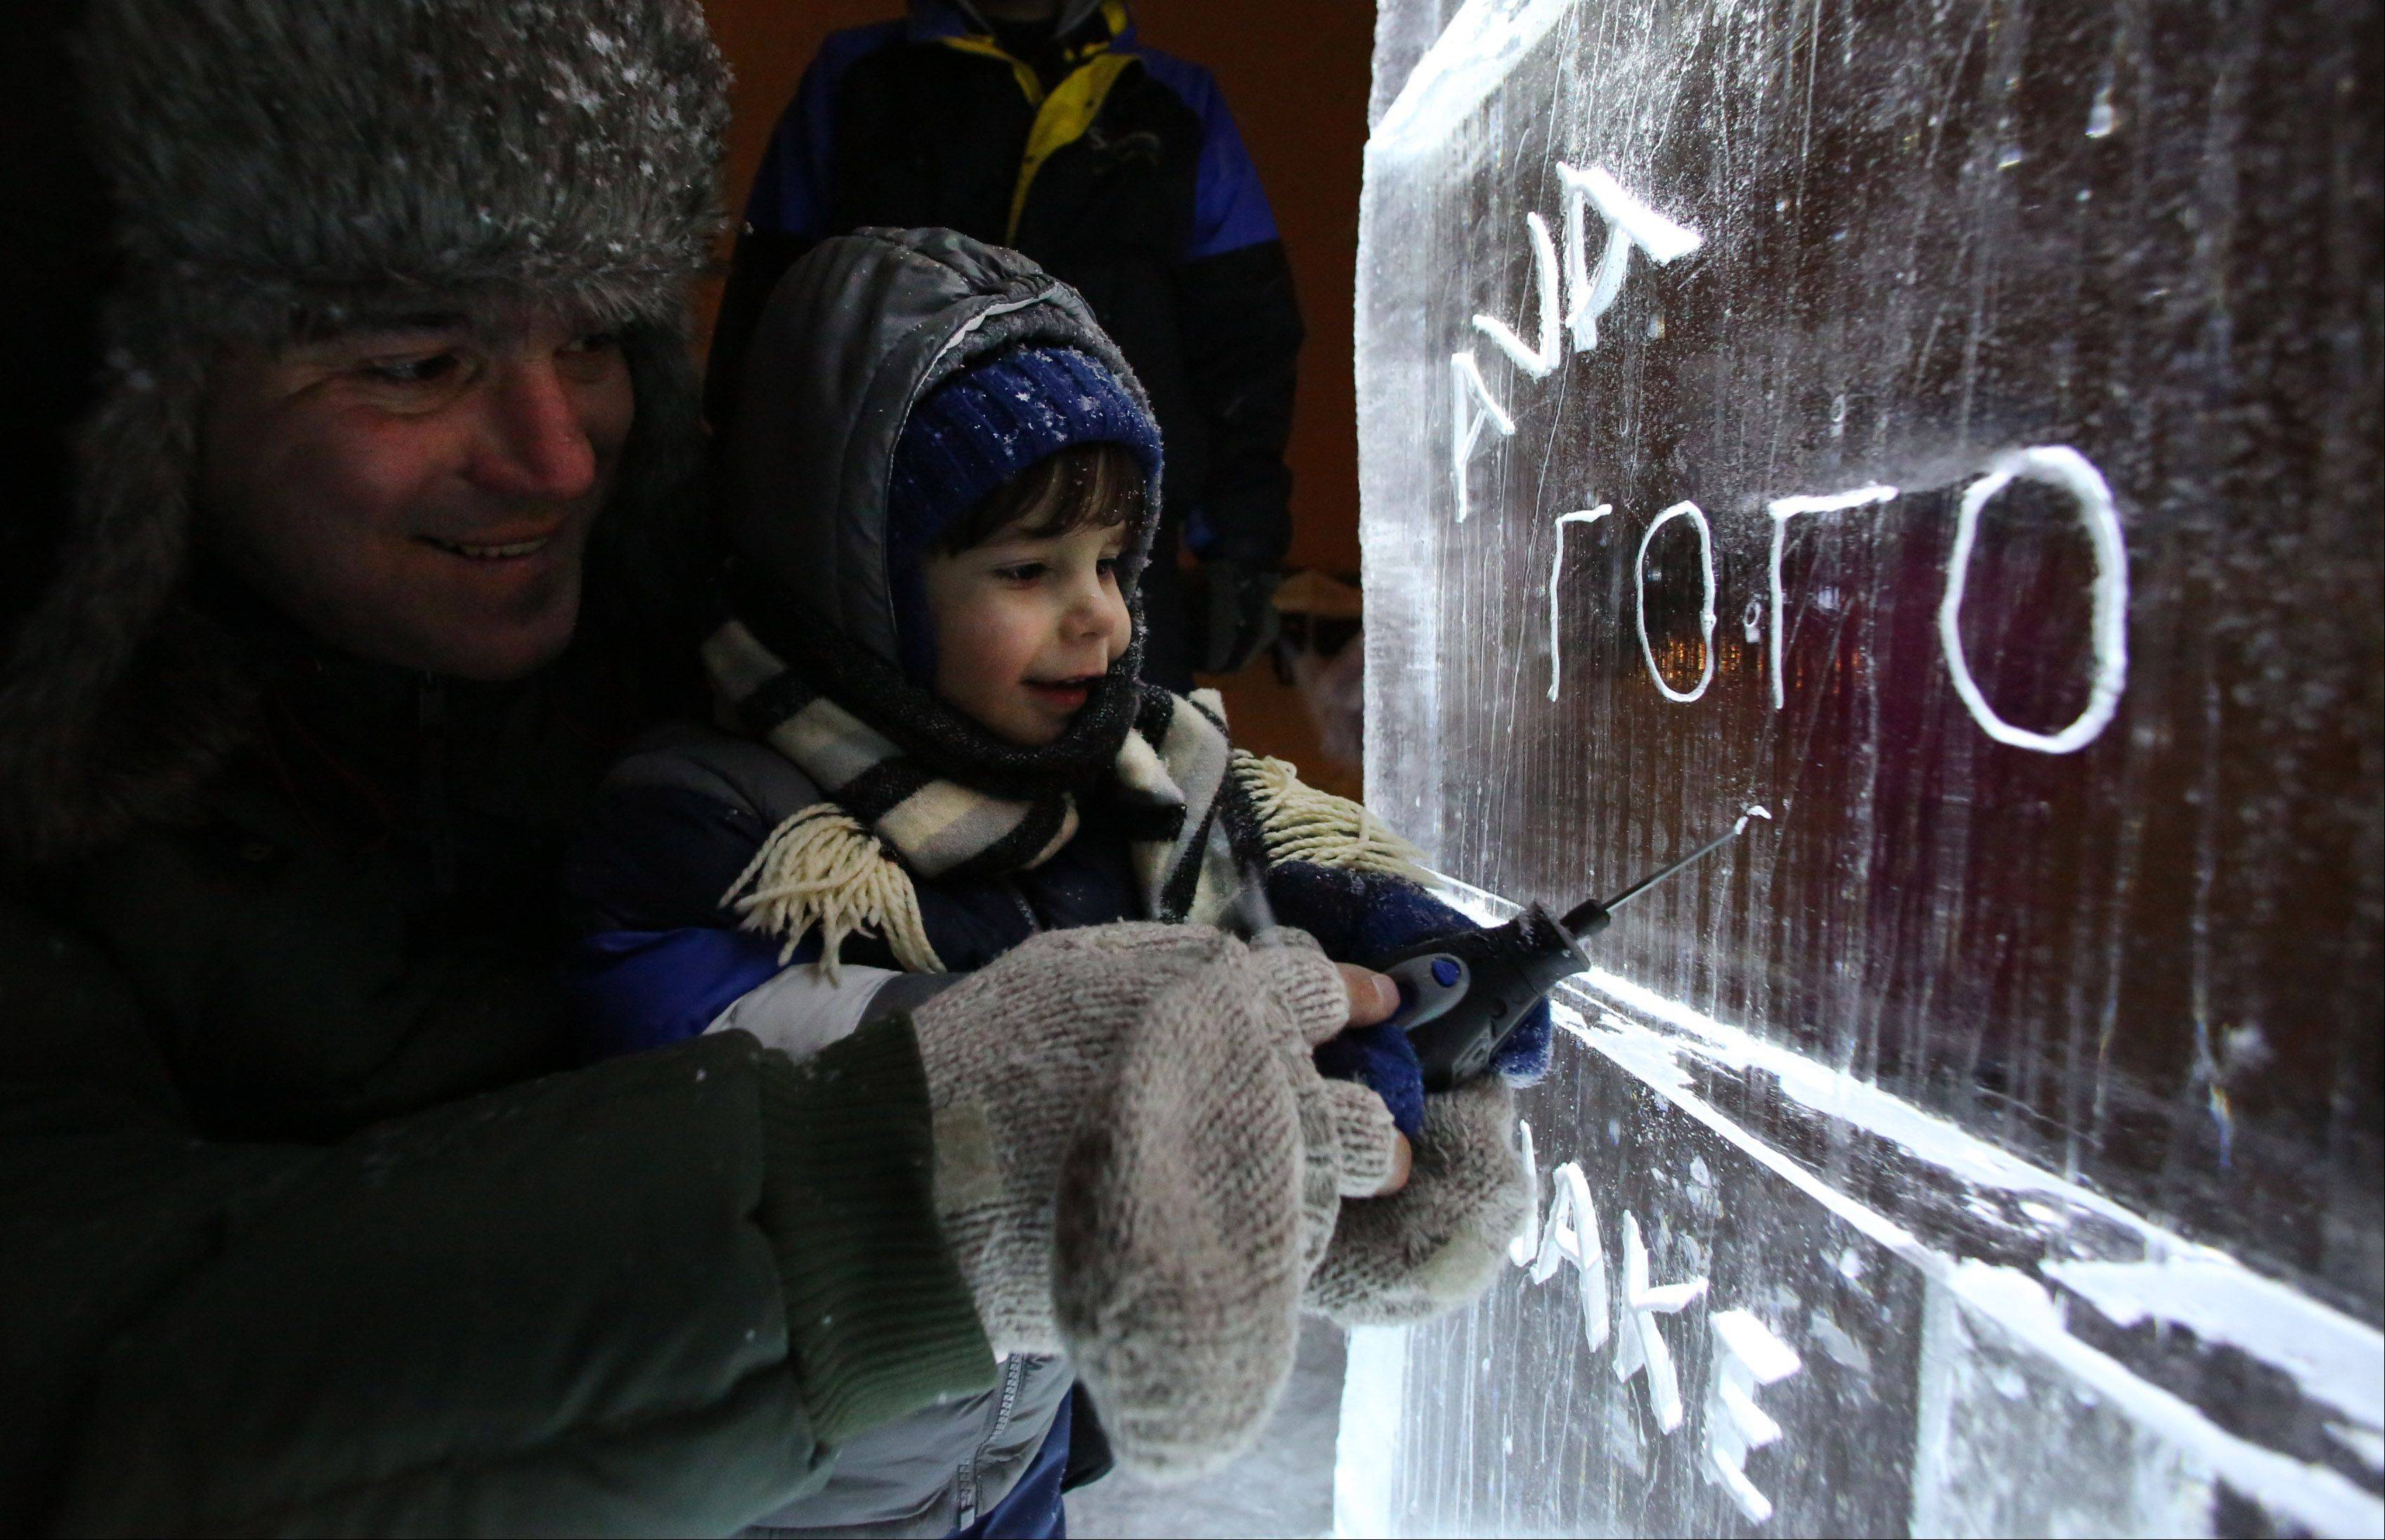 Two-year-old George Encher of Gurnee starts to carve his name in a large ice block while being held by his dad, also named George, on Friday night at the Gurnee Park District�s annual Frosty Fest.